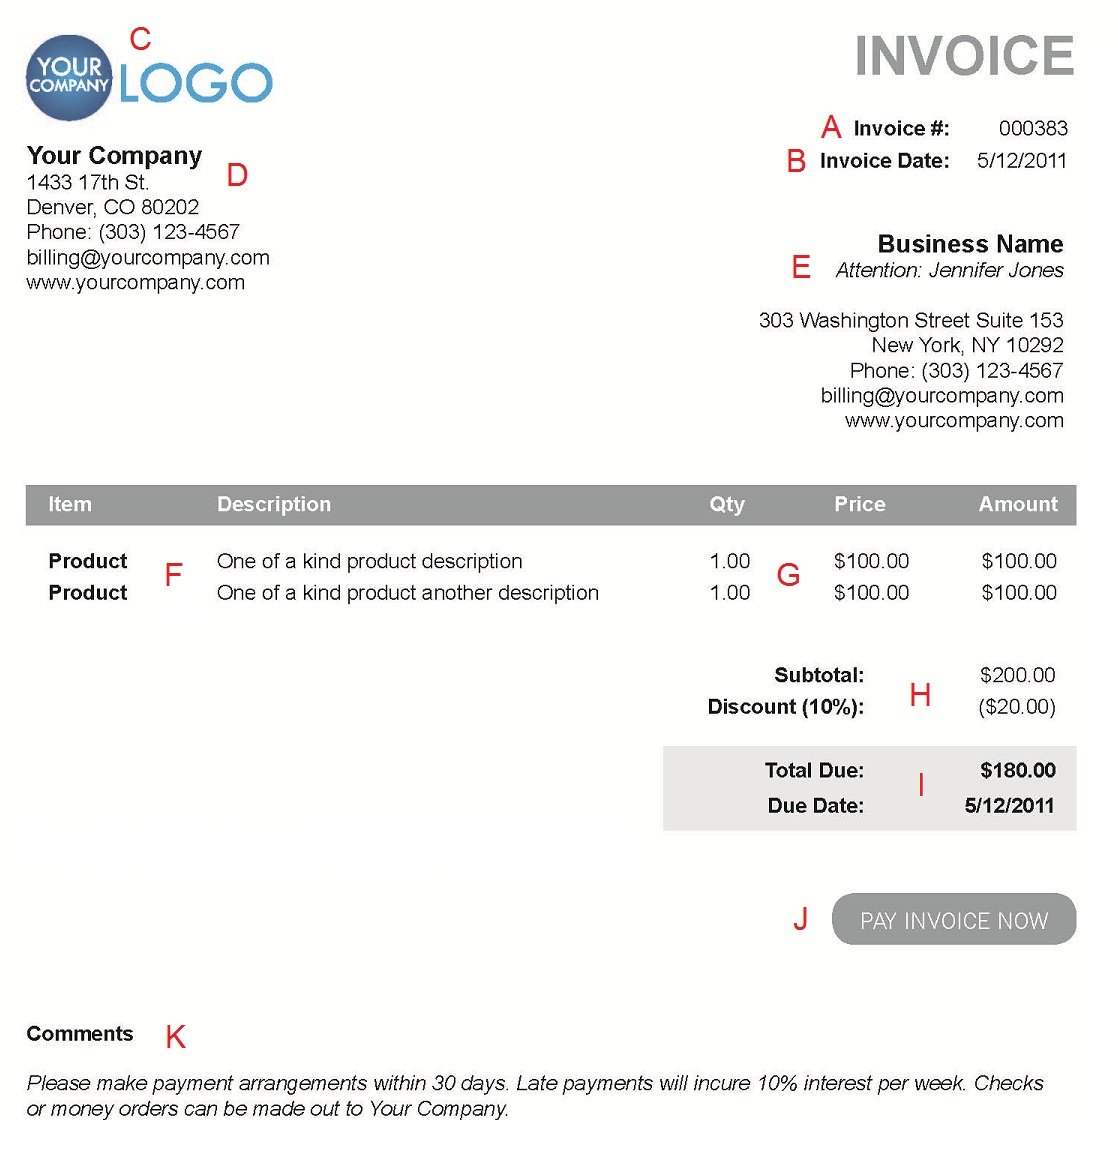 Imagerackus  Stunning The  Different Sections Of An Electronic Payment Invoice With Inspiring A  With Charming Western Union Online Receipt Also Ny Taxi Receipt In Addition Sample Sales Receipt Template And Why Save Receipts As Well As Paypal Non Receipt Dispute Additionally Receipt Auf Deutsch From Paysimplecom With Imagerackus  Inspiring The  Different Sections Of An Electronic Payment Invoice With Charming A  And Stunning Western Union Online Receipt Also Ny Taxi Receipt In Addition Sample Sales Receipt Template From Paysimplecom